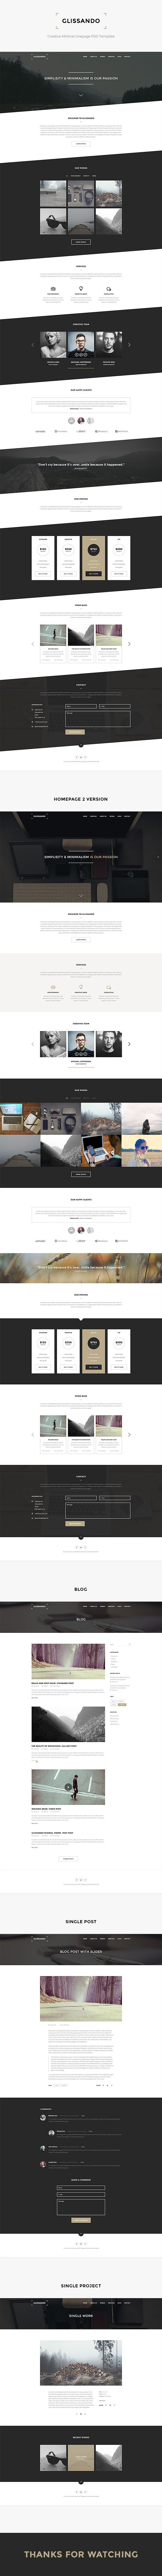 WordPress Themes. Themes und Designvorlagen für #WordPress http ...